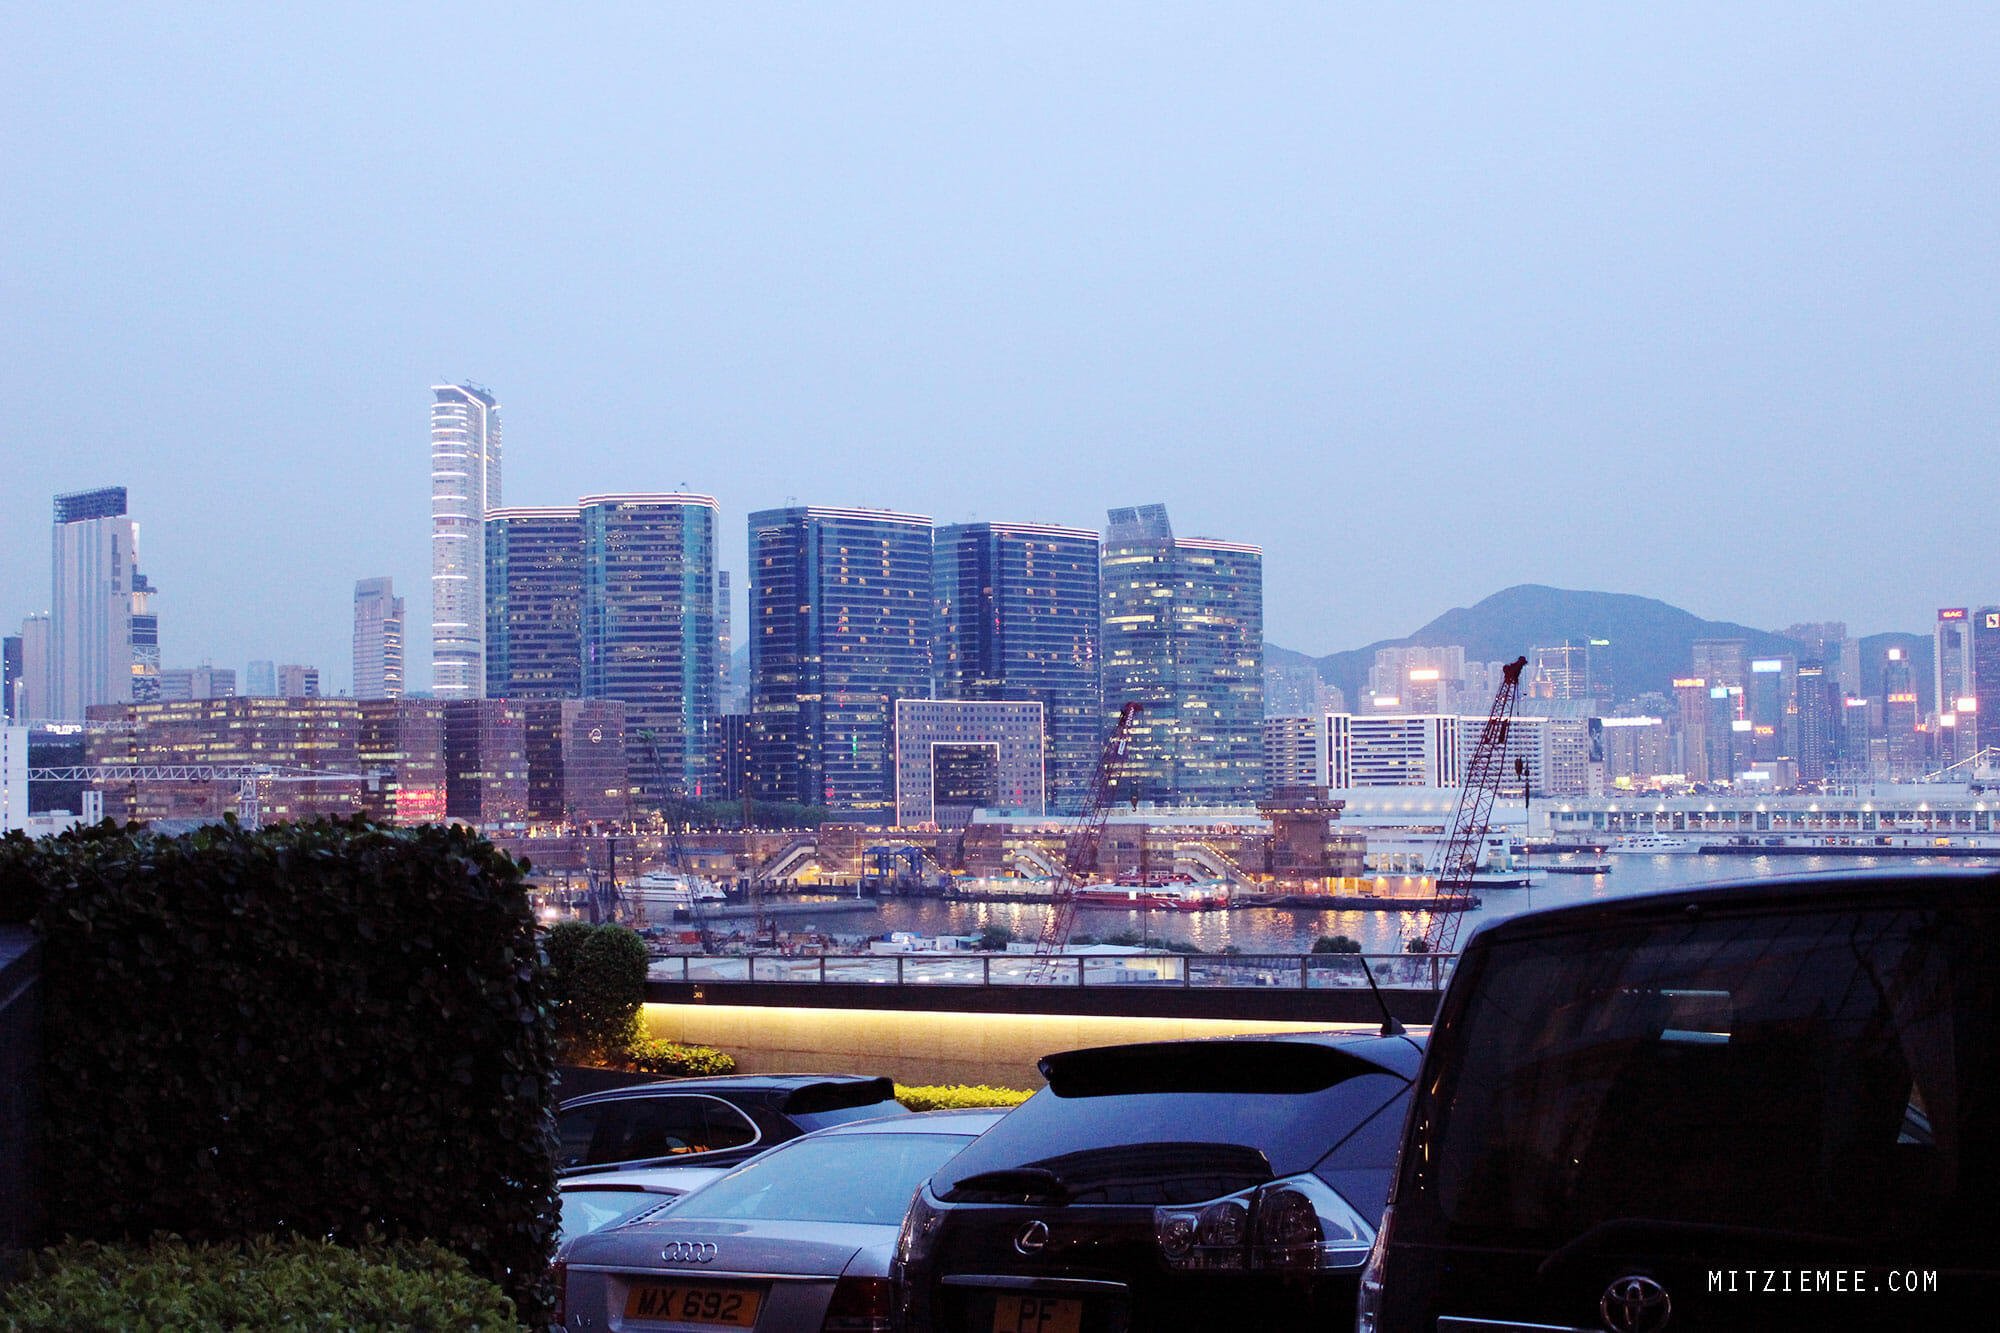 Hong Kong evening view